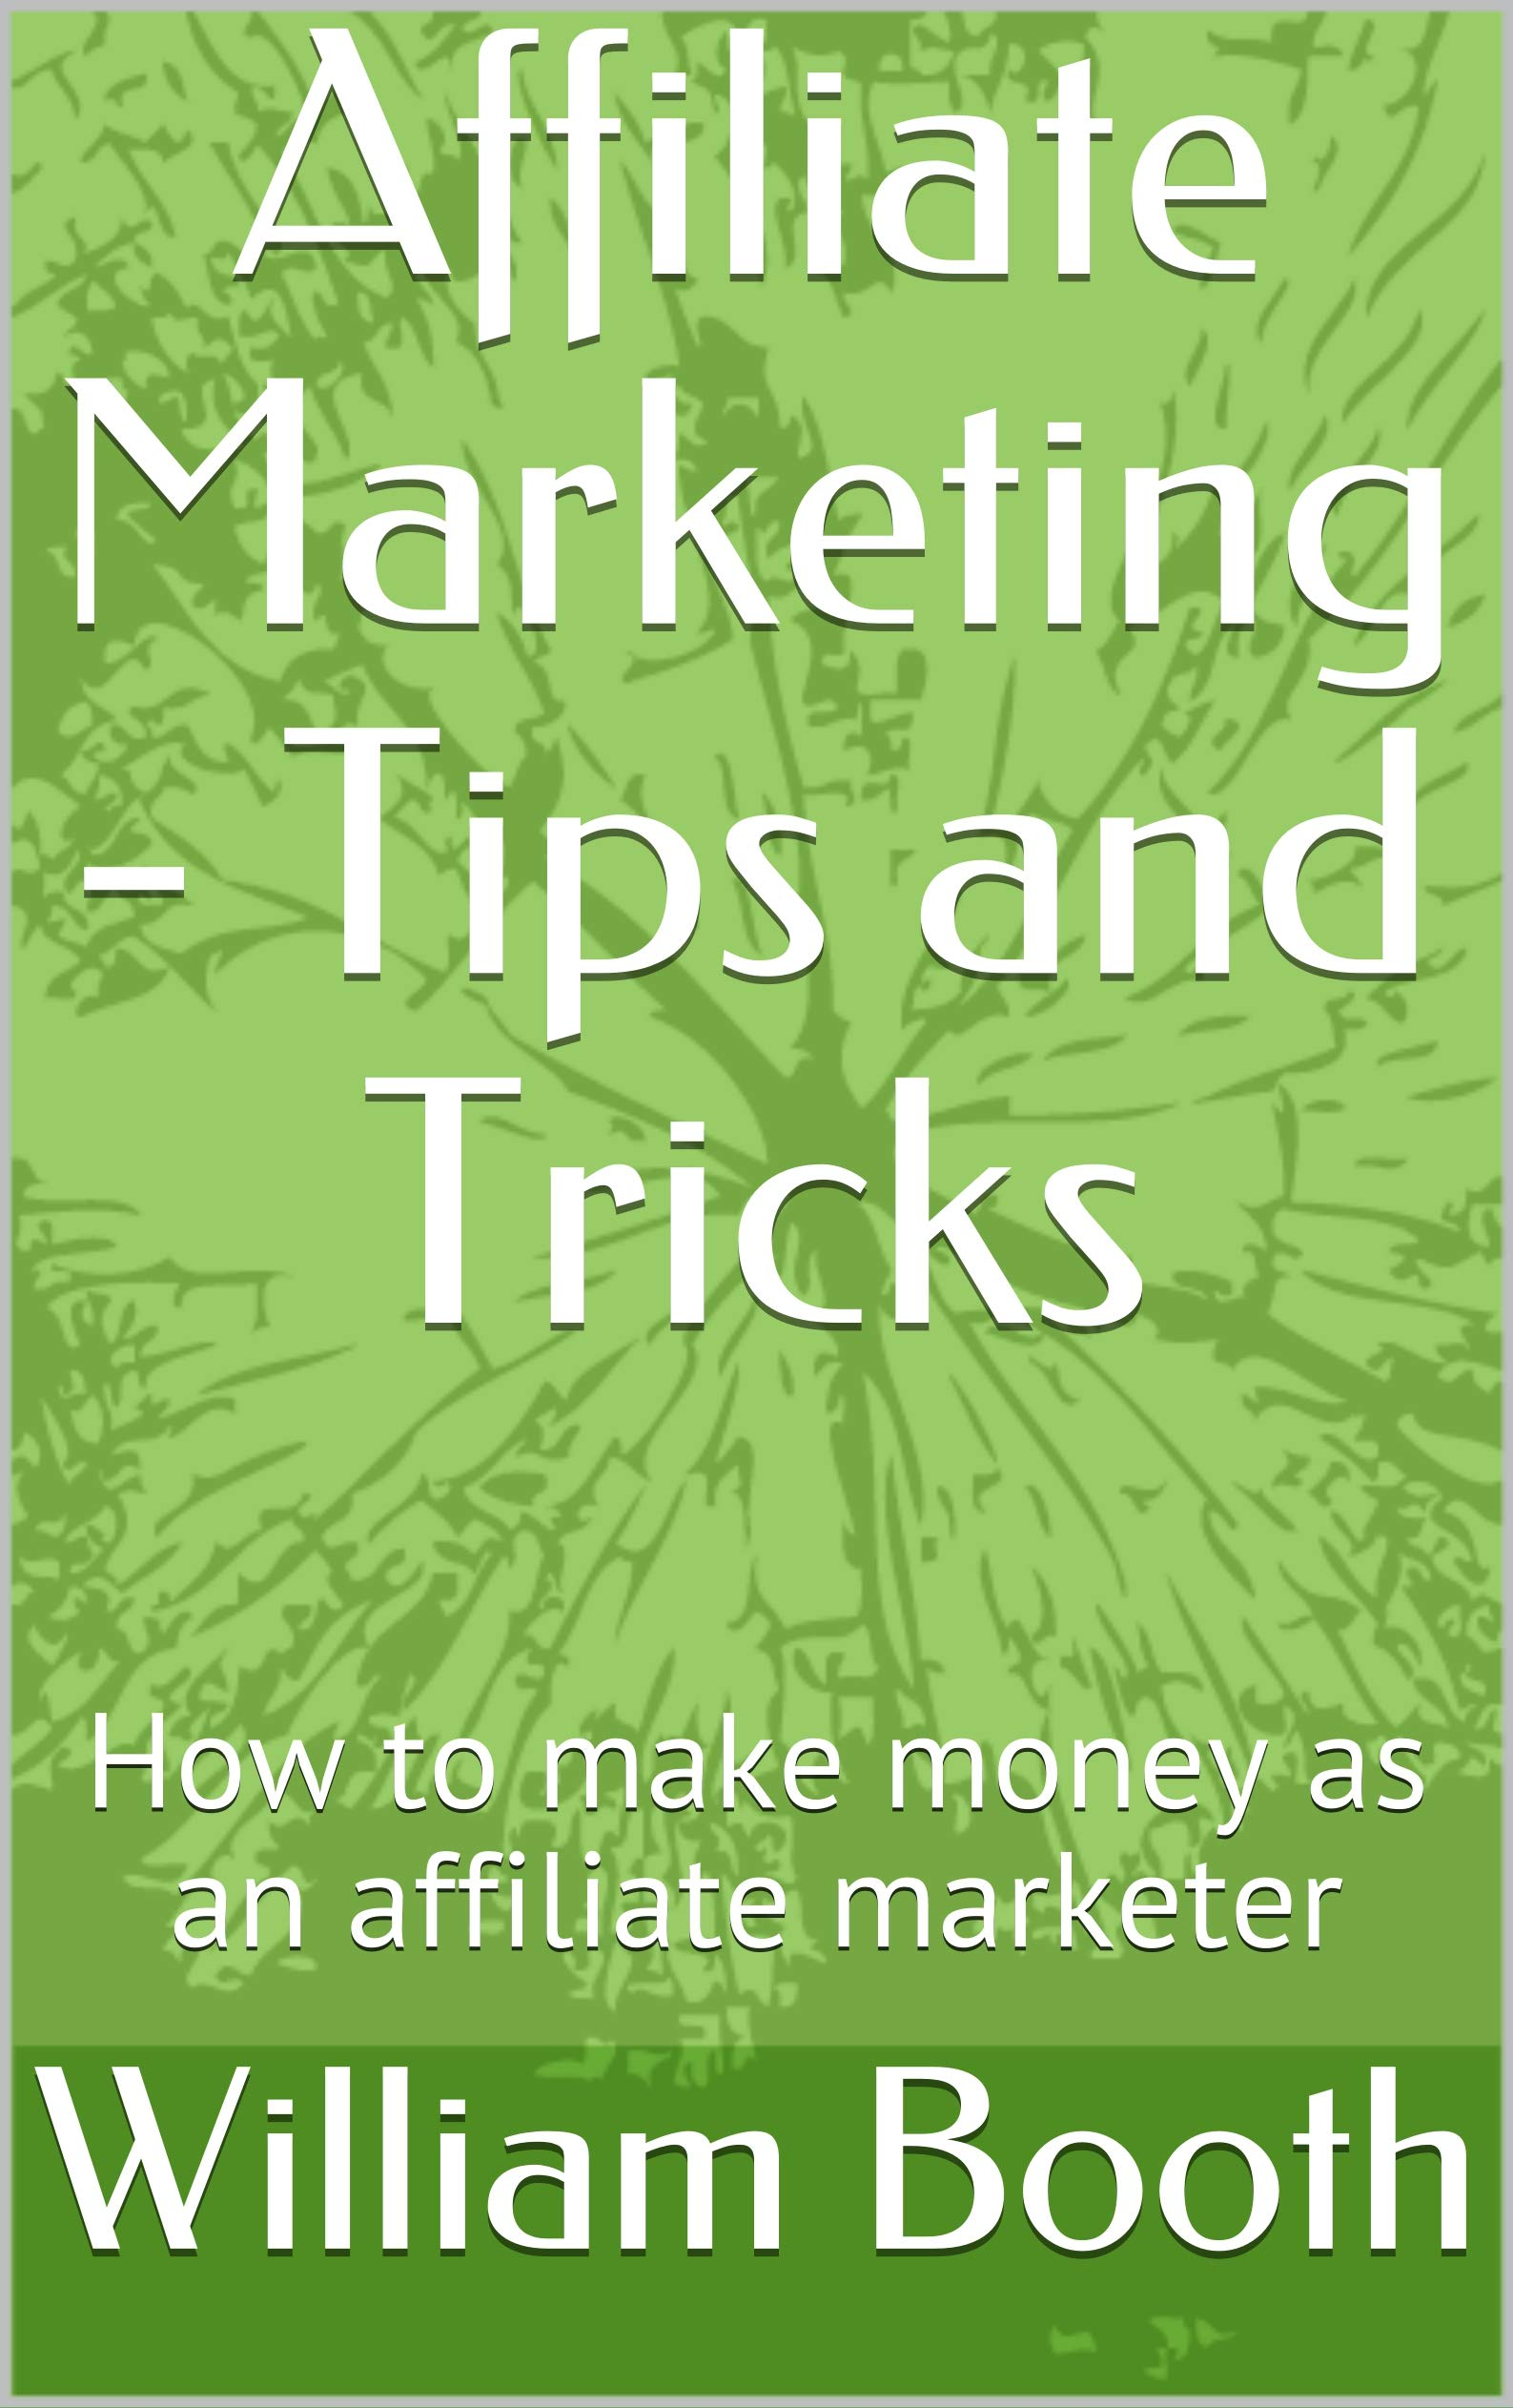 Affiliate Marketing - Tips and Tricks : How to make money as an affiliate marketer